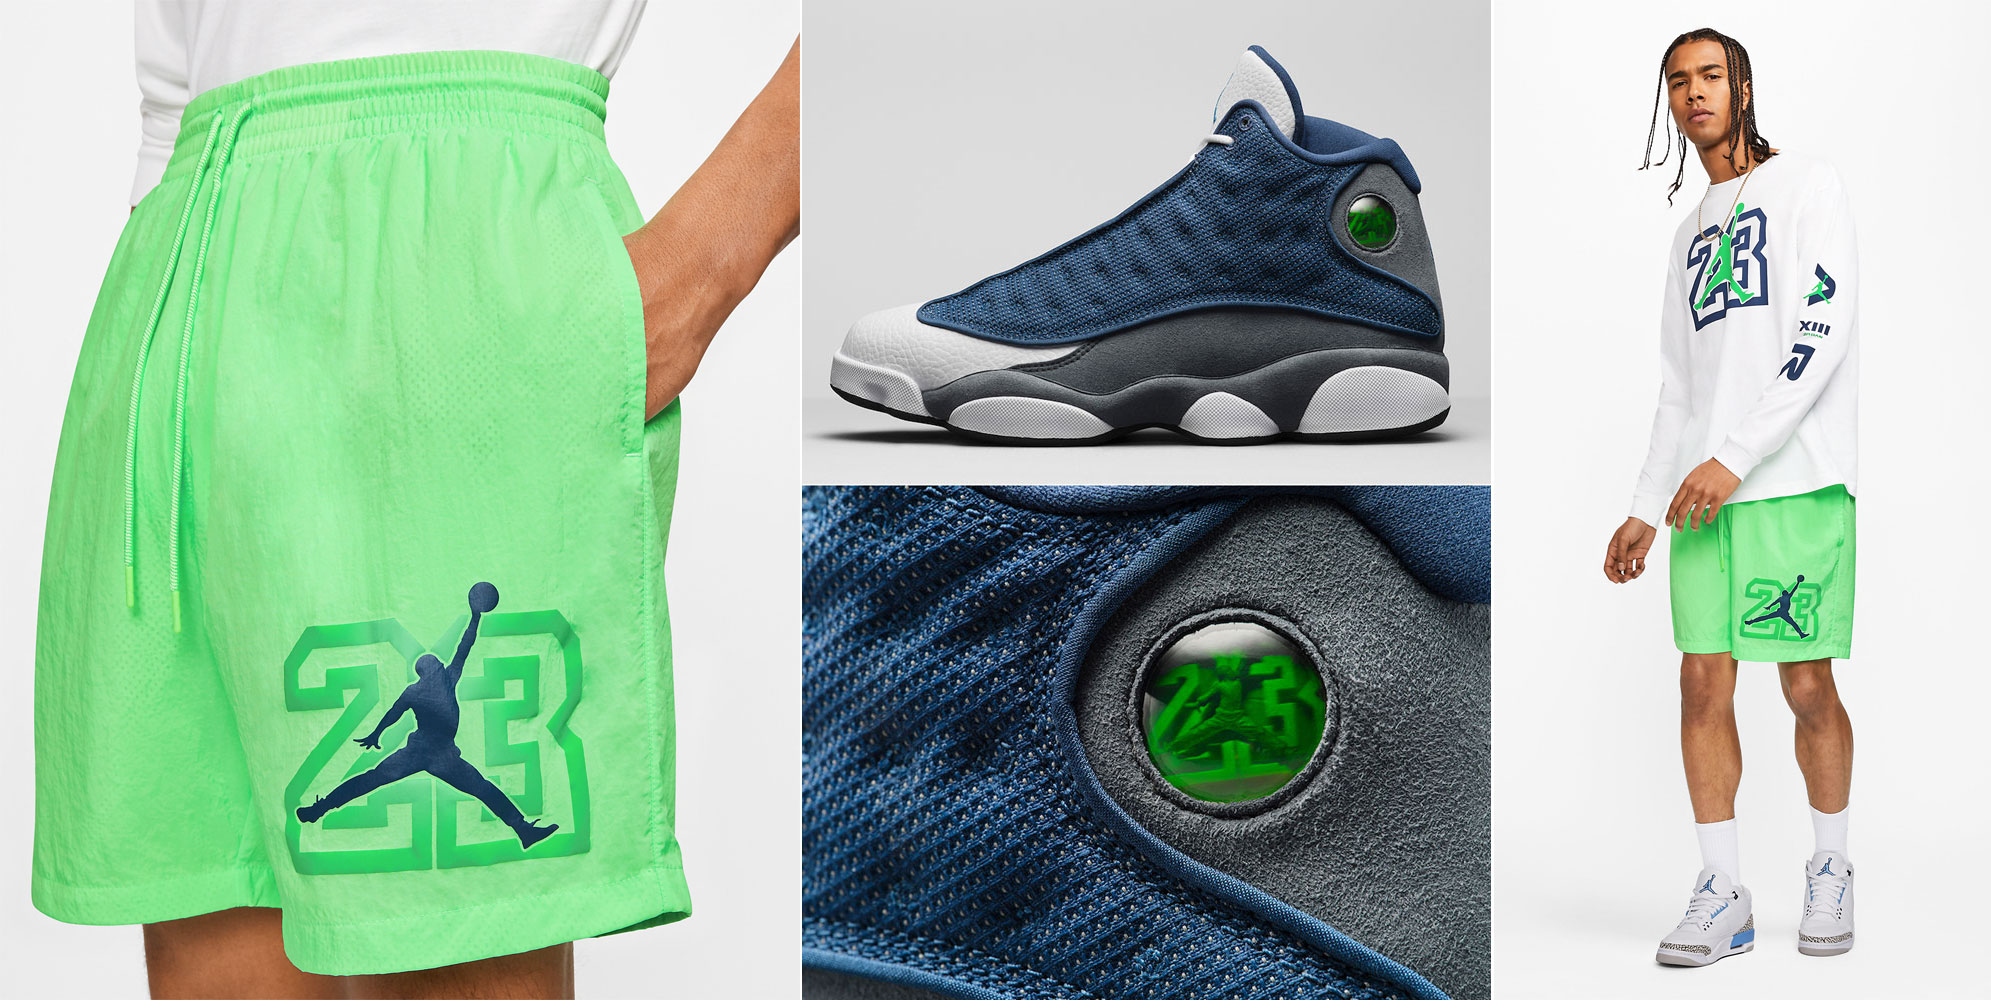 Air Jordan 13 Flint 2020 Sneaker Outfits Sneakerfits Com